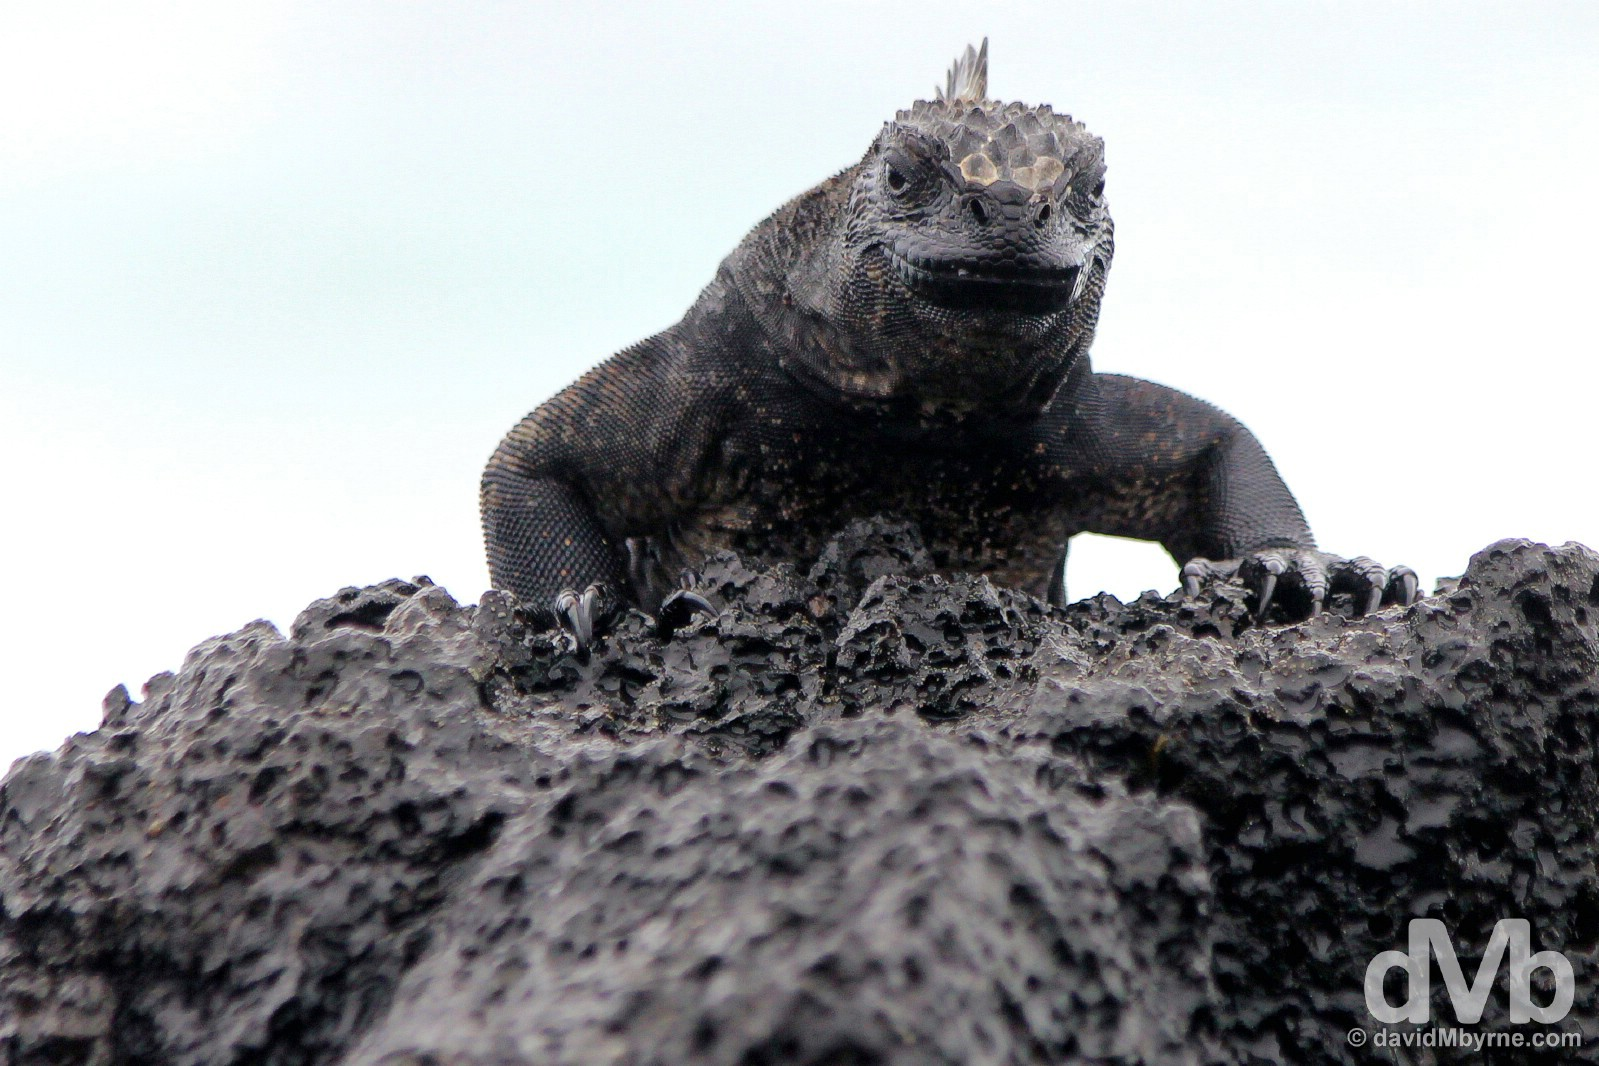 A Marine Iguana outside Puerto Ayora on Isla Santa Cruz, Galapagos, Ecuador. July 16, 2015.